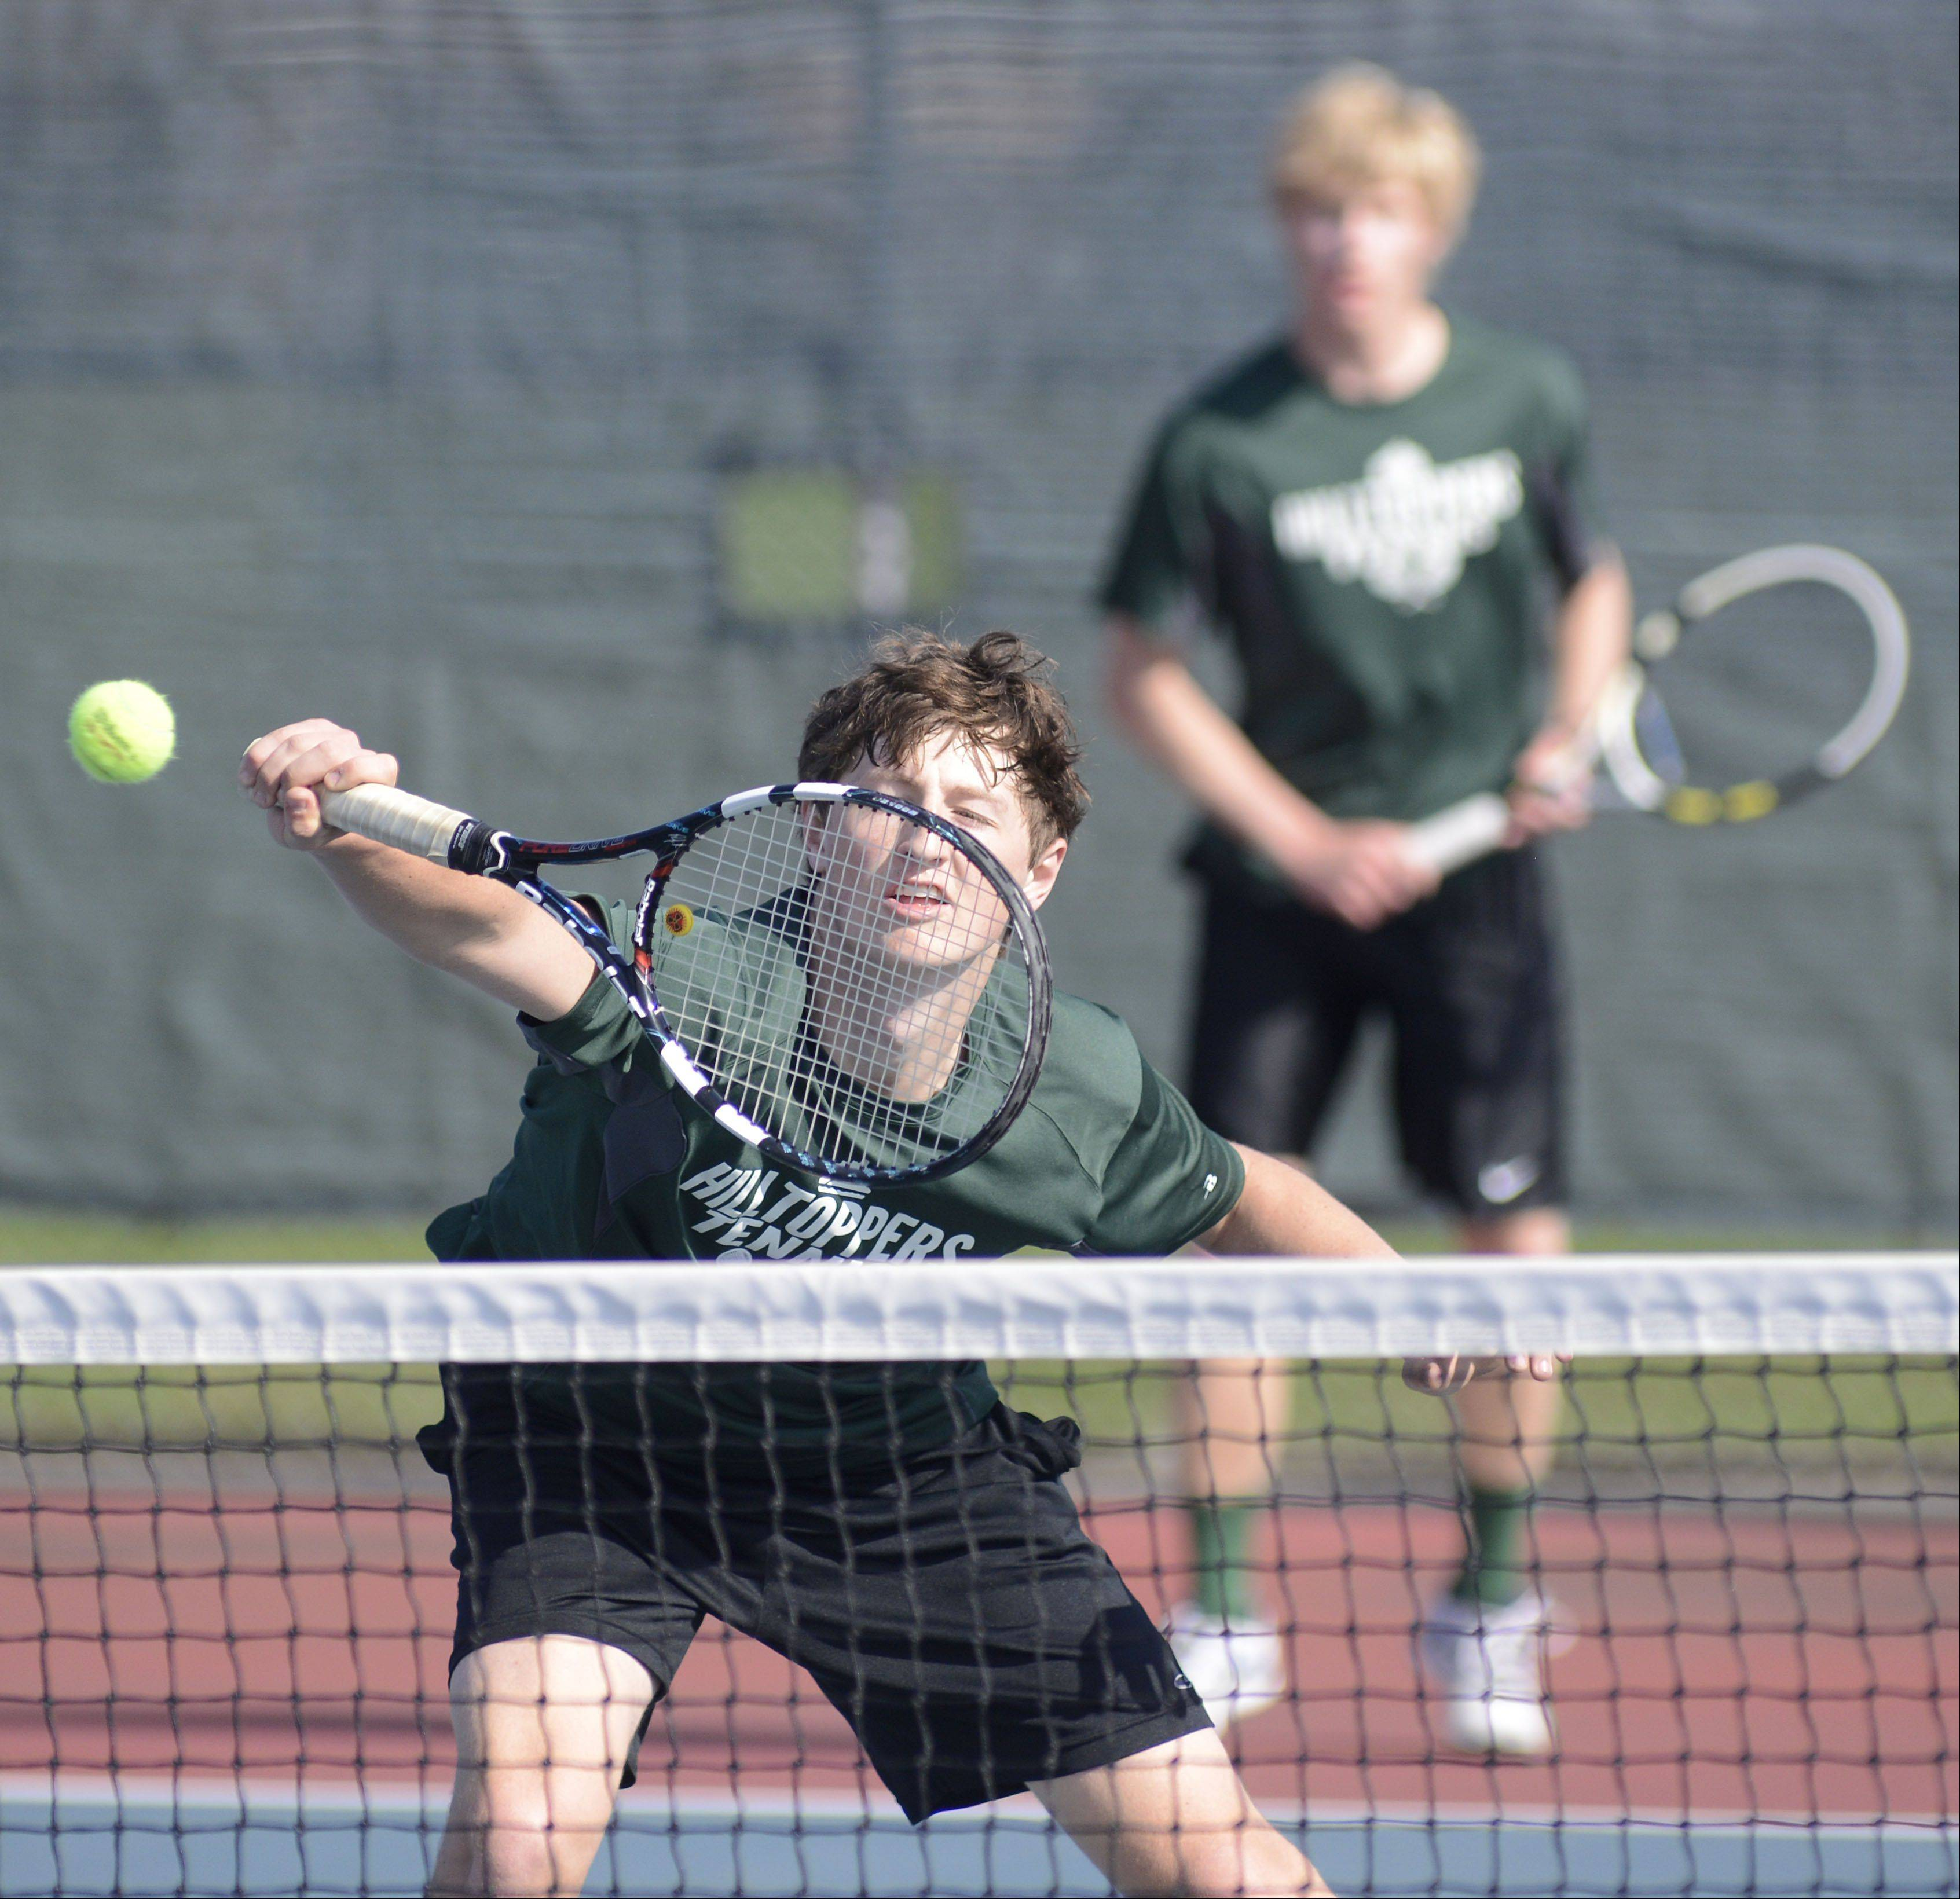 Glenbard West's Jack Kellenberger is quick to return a hit to St. Charles East in the first doubles match with teammate Kenny Reick at West Aurora High School on Saturday, April 27.